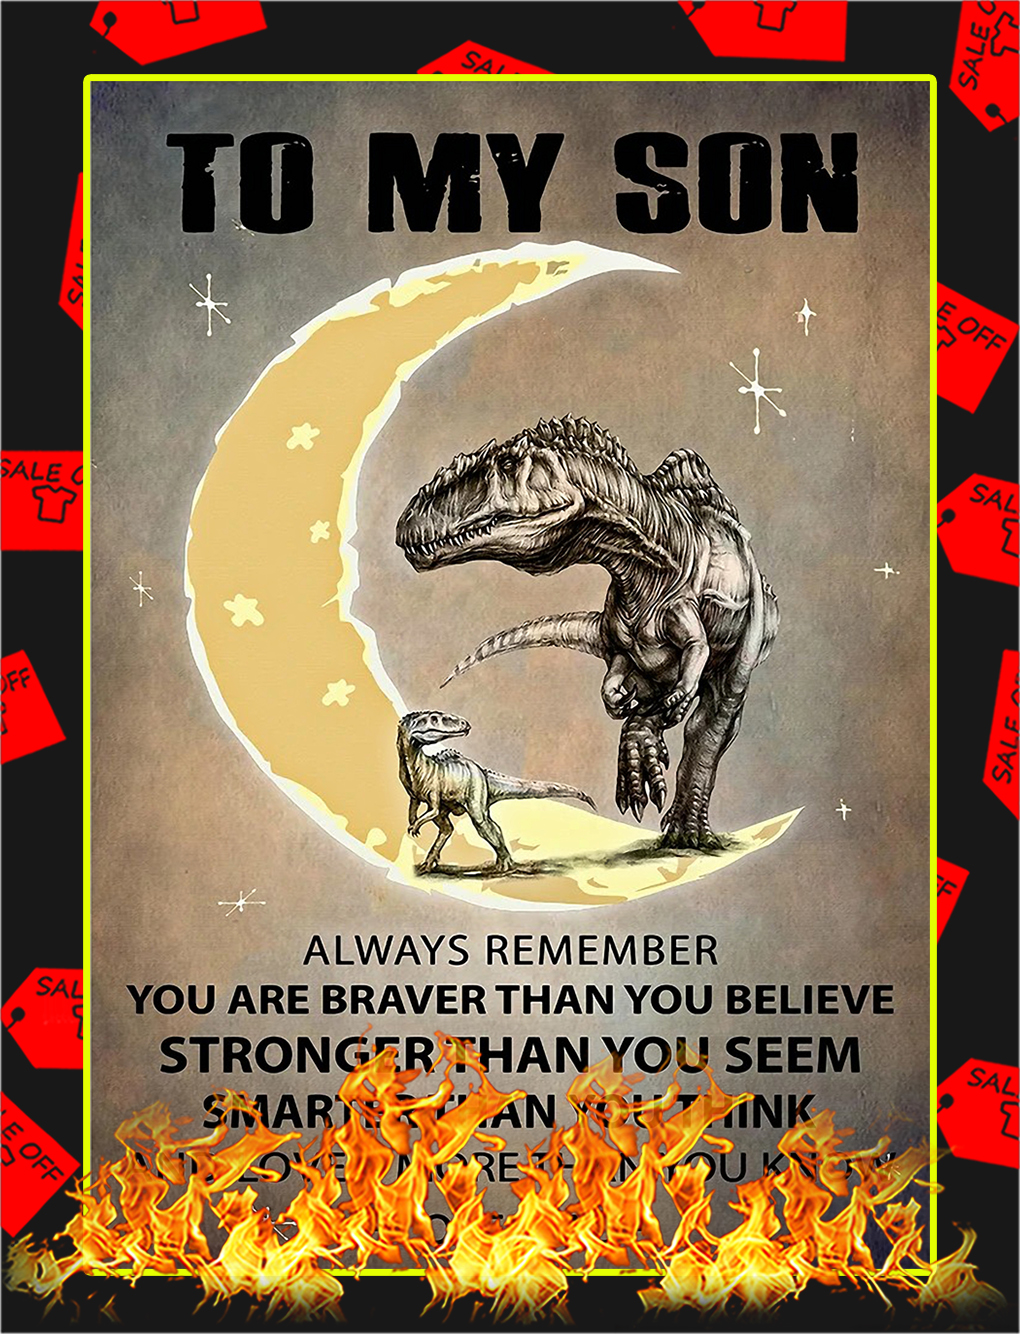 Dinosaur Dad to my son poster - A3